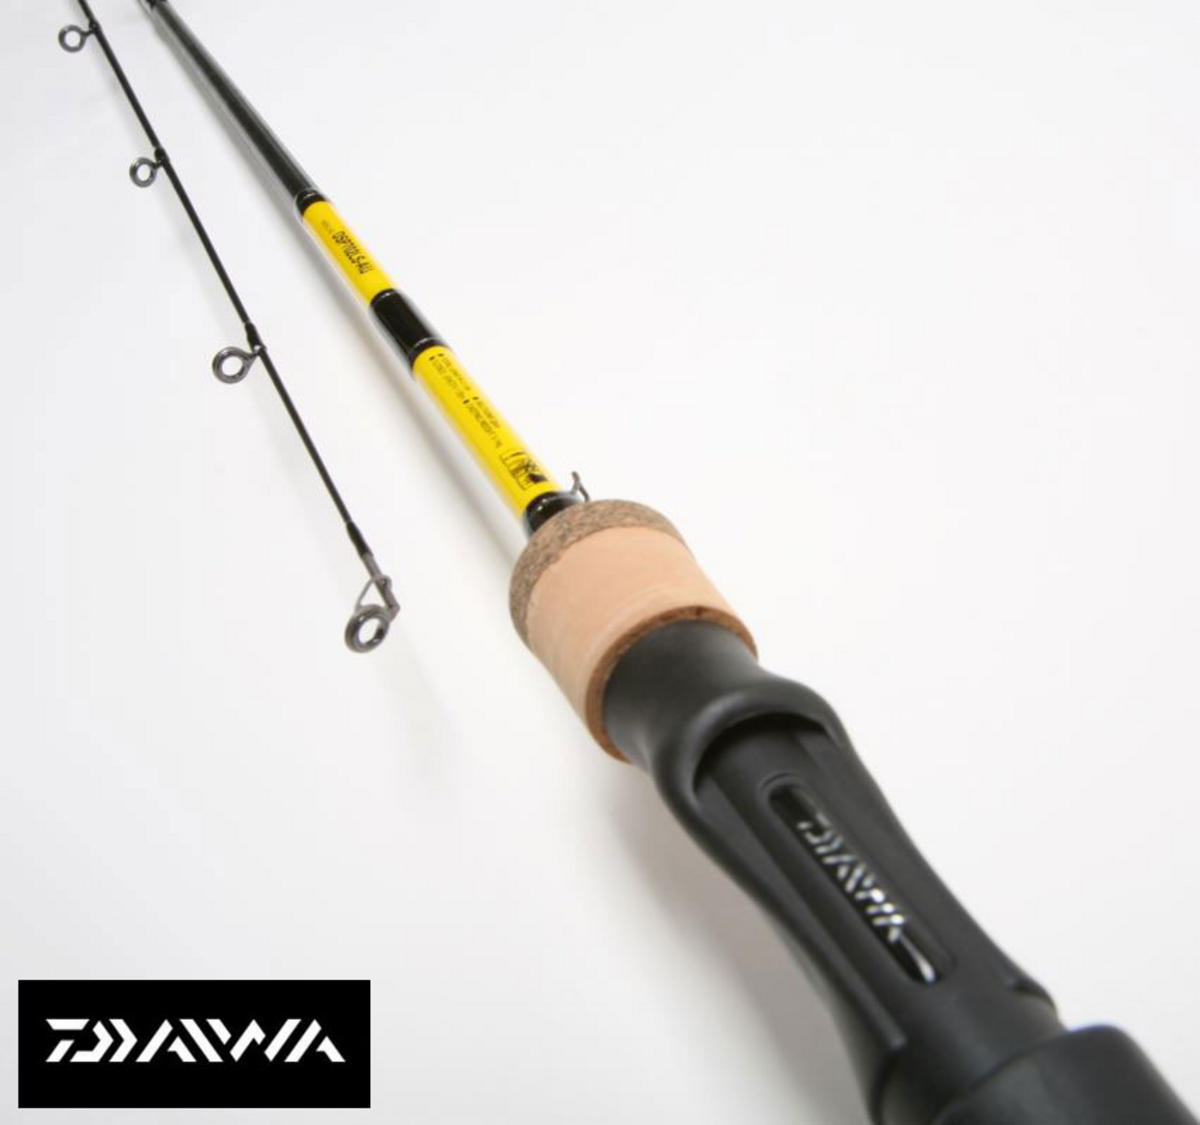 EX DISPLAY DAIWA SPECIALIST LIGHT LURE RODS SHAD CASTER 7' 5-21g DSC702MLS-AU